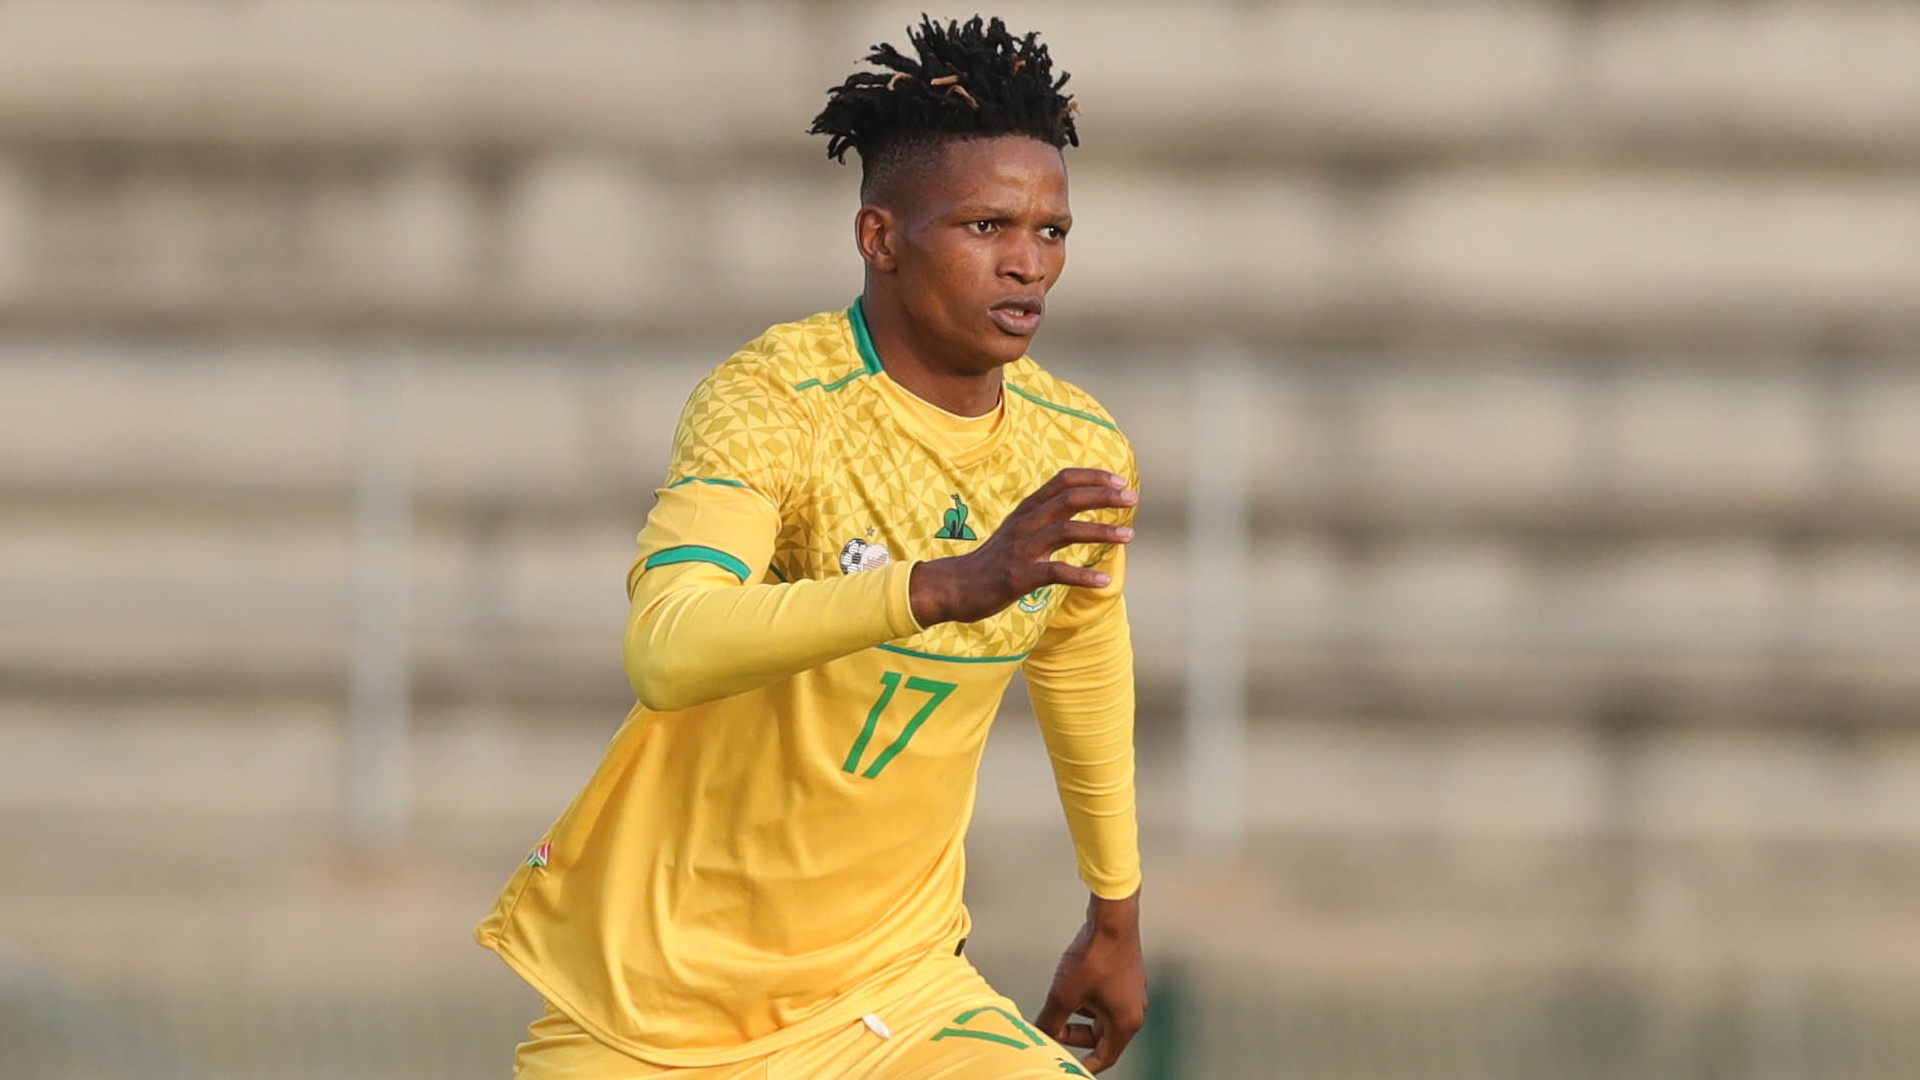 Dube won't get reckless red cards at Kaizer Chiefs – Dladla